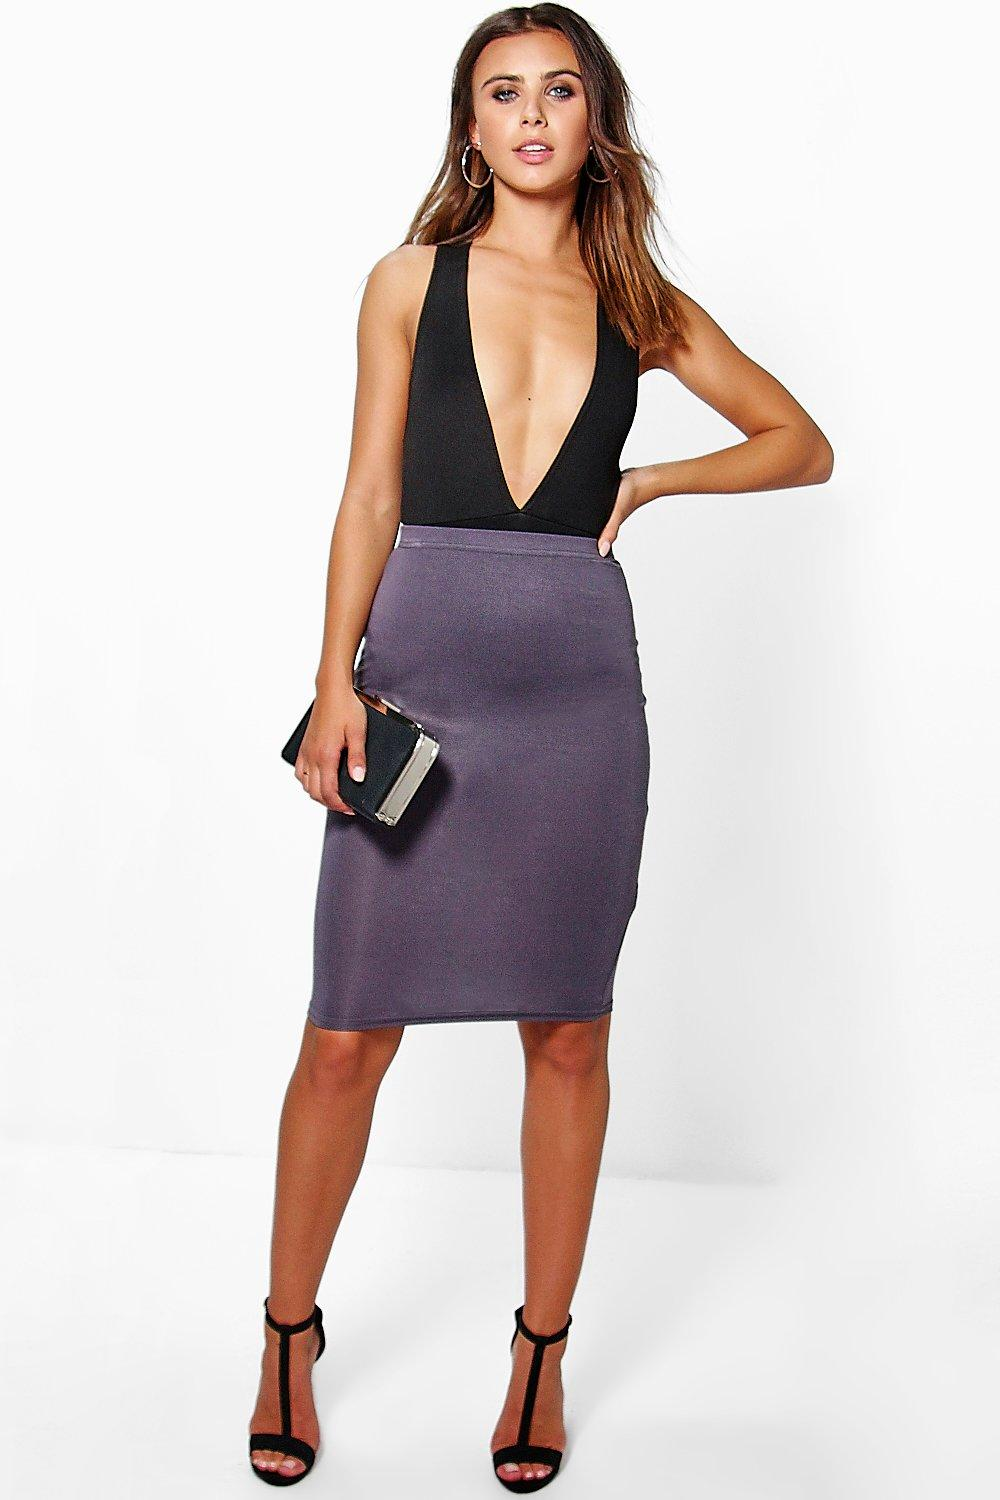 Petite Nadia Basic Midi Bodycon Skirt